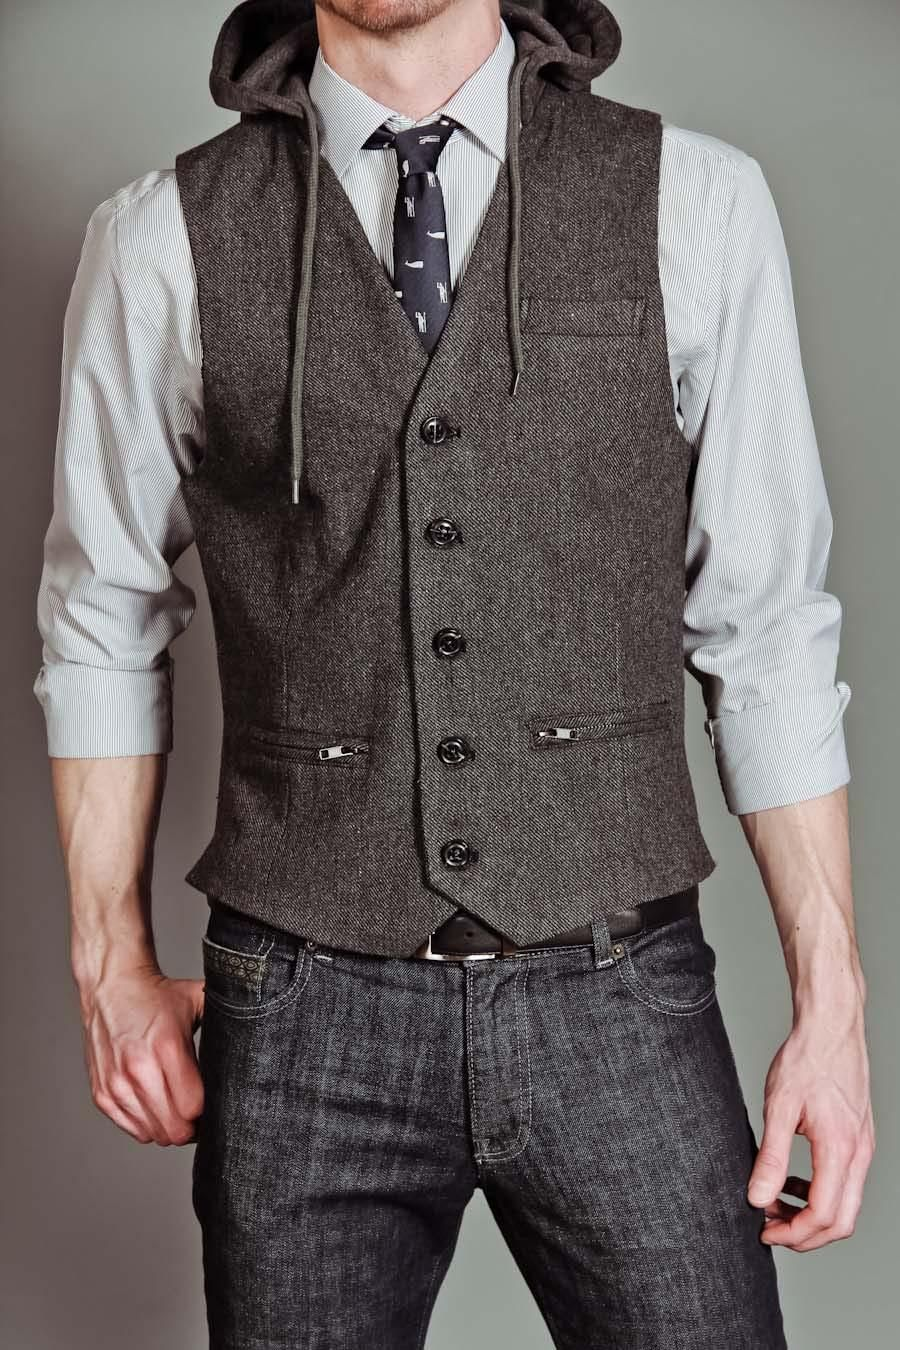 How To Wear Hooded Vest